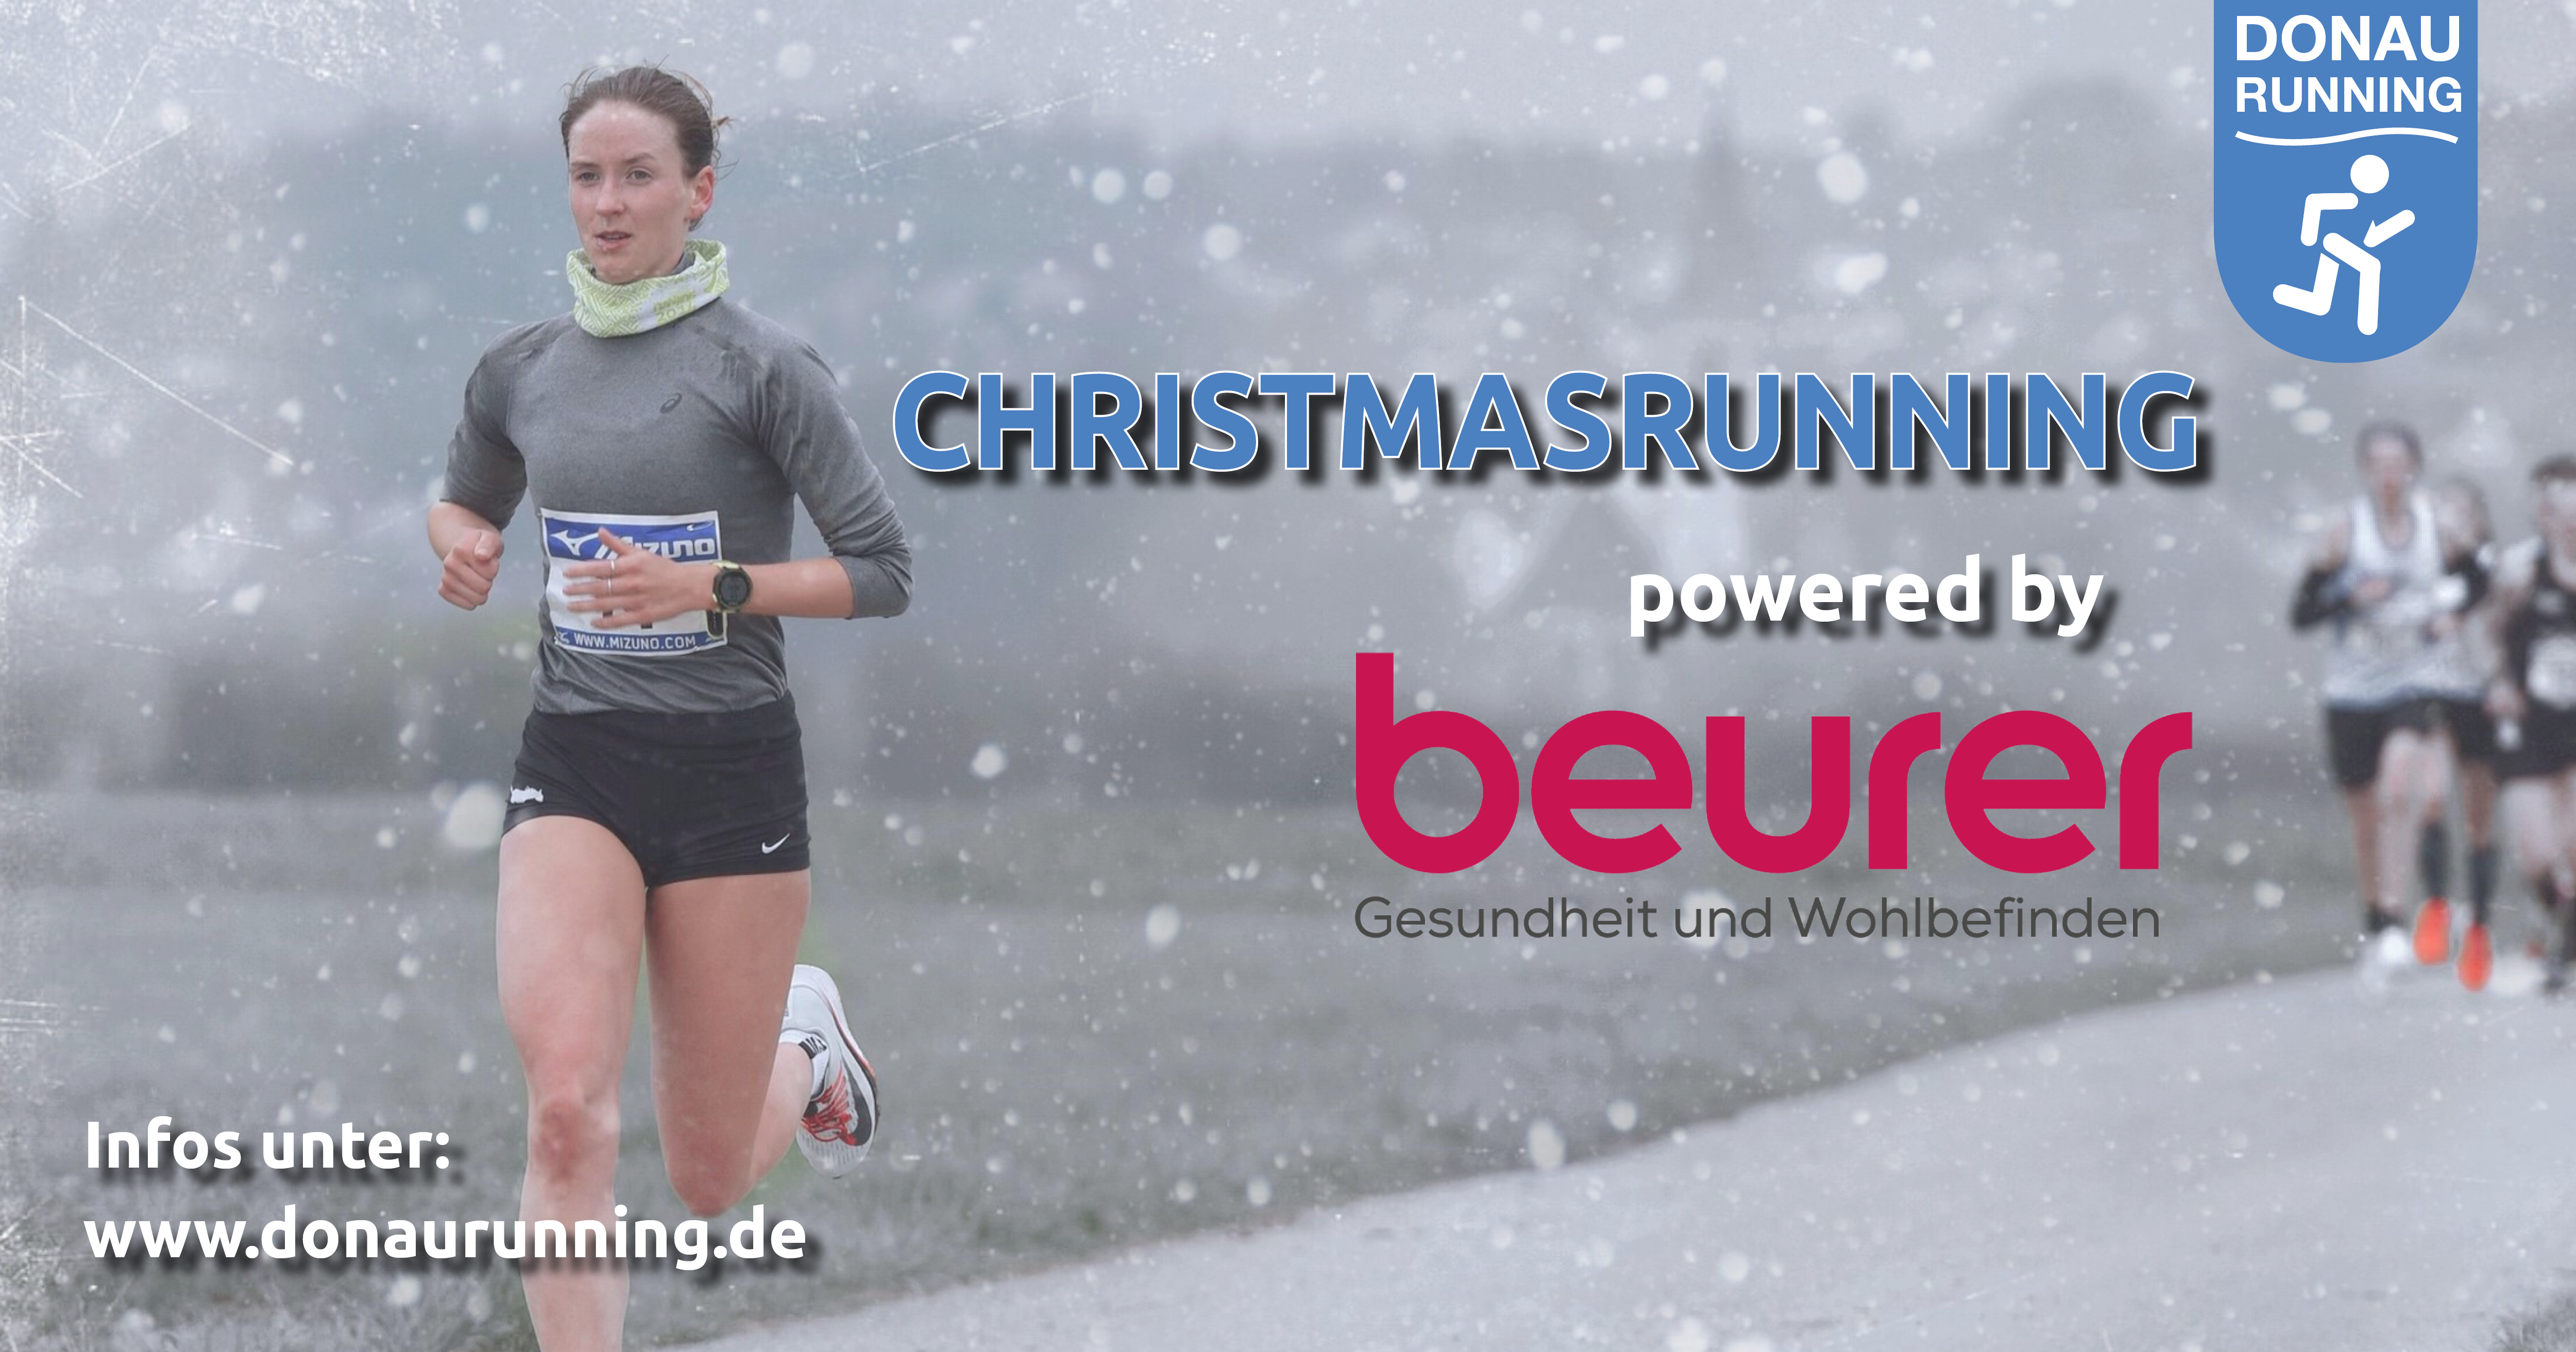 Christmasrunning powered by Beurer